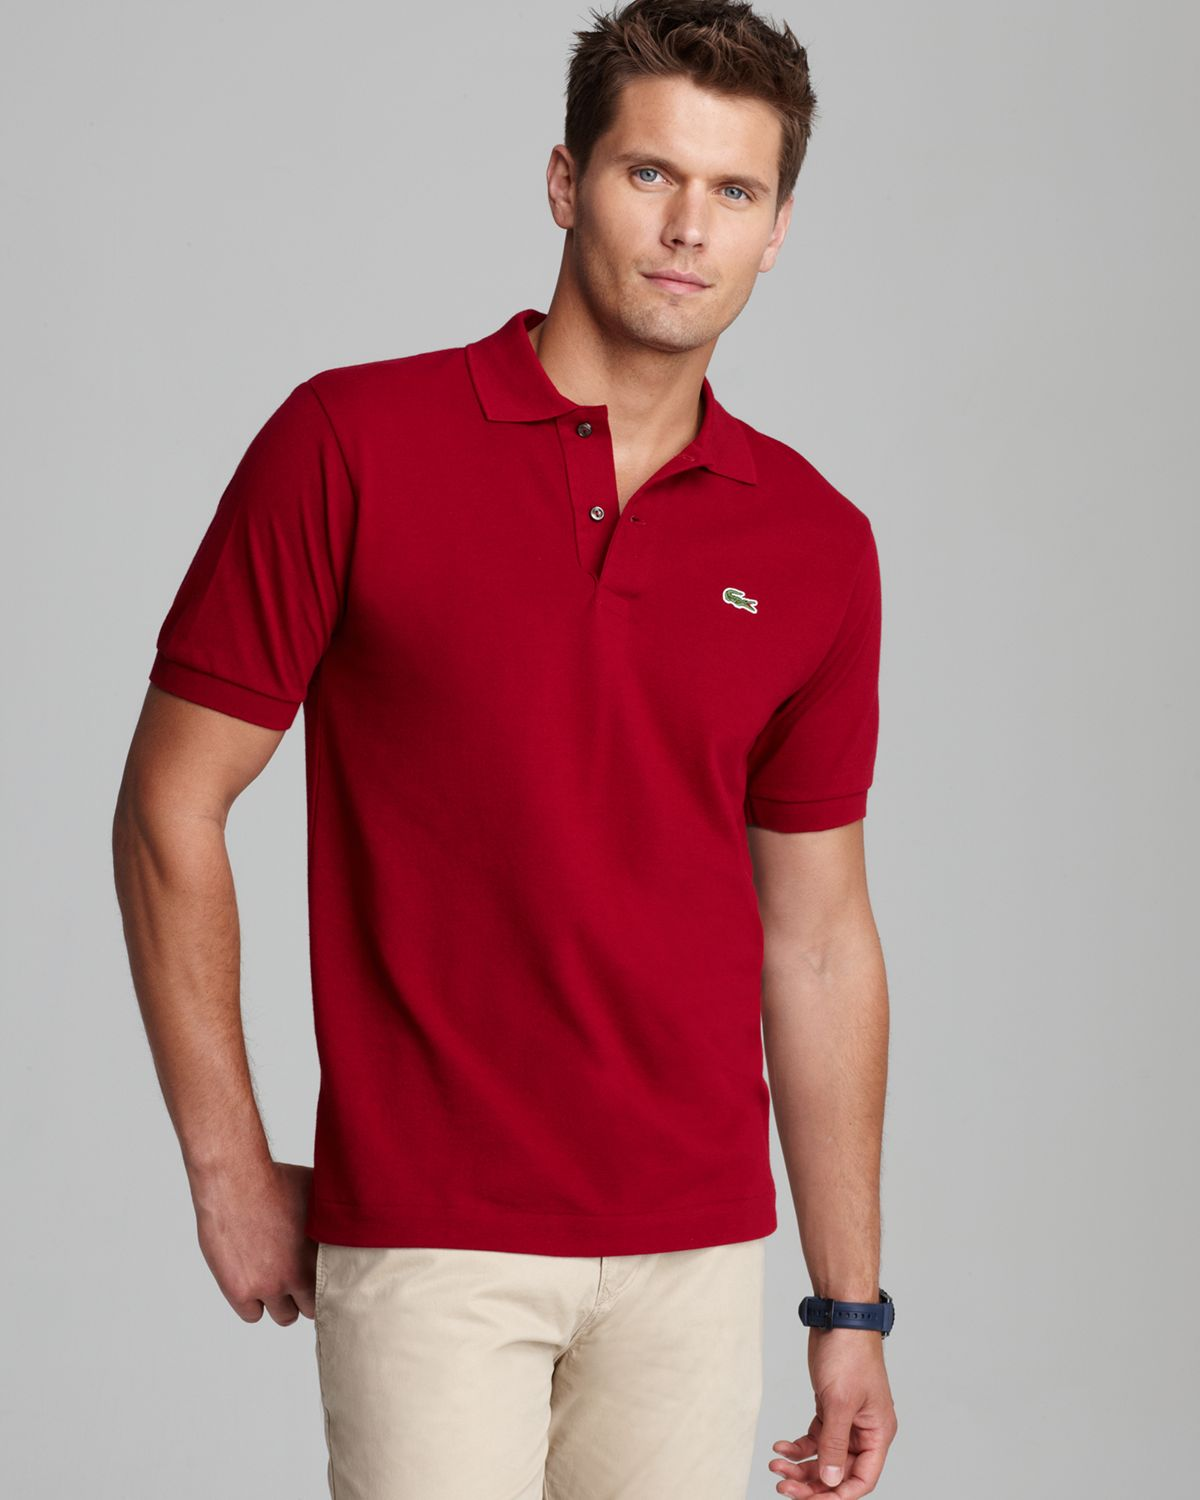 Polos, Designer Polos, Designer Men's Polos. Relaxed style meets sporty sophistication in designer polos from Bloomingdale's. Whether you're spending a breezy weekend morning on the yacht or taking in a game on your afternoon off, classic short-sleeve polos from Ralph Lauren, Burberry or Ted Baker keep you looking your best.